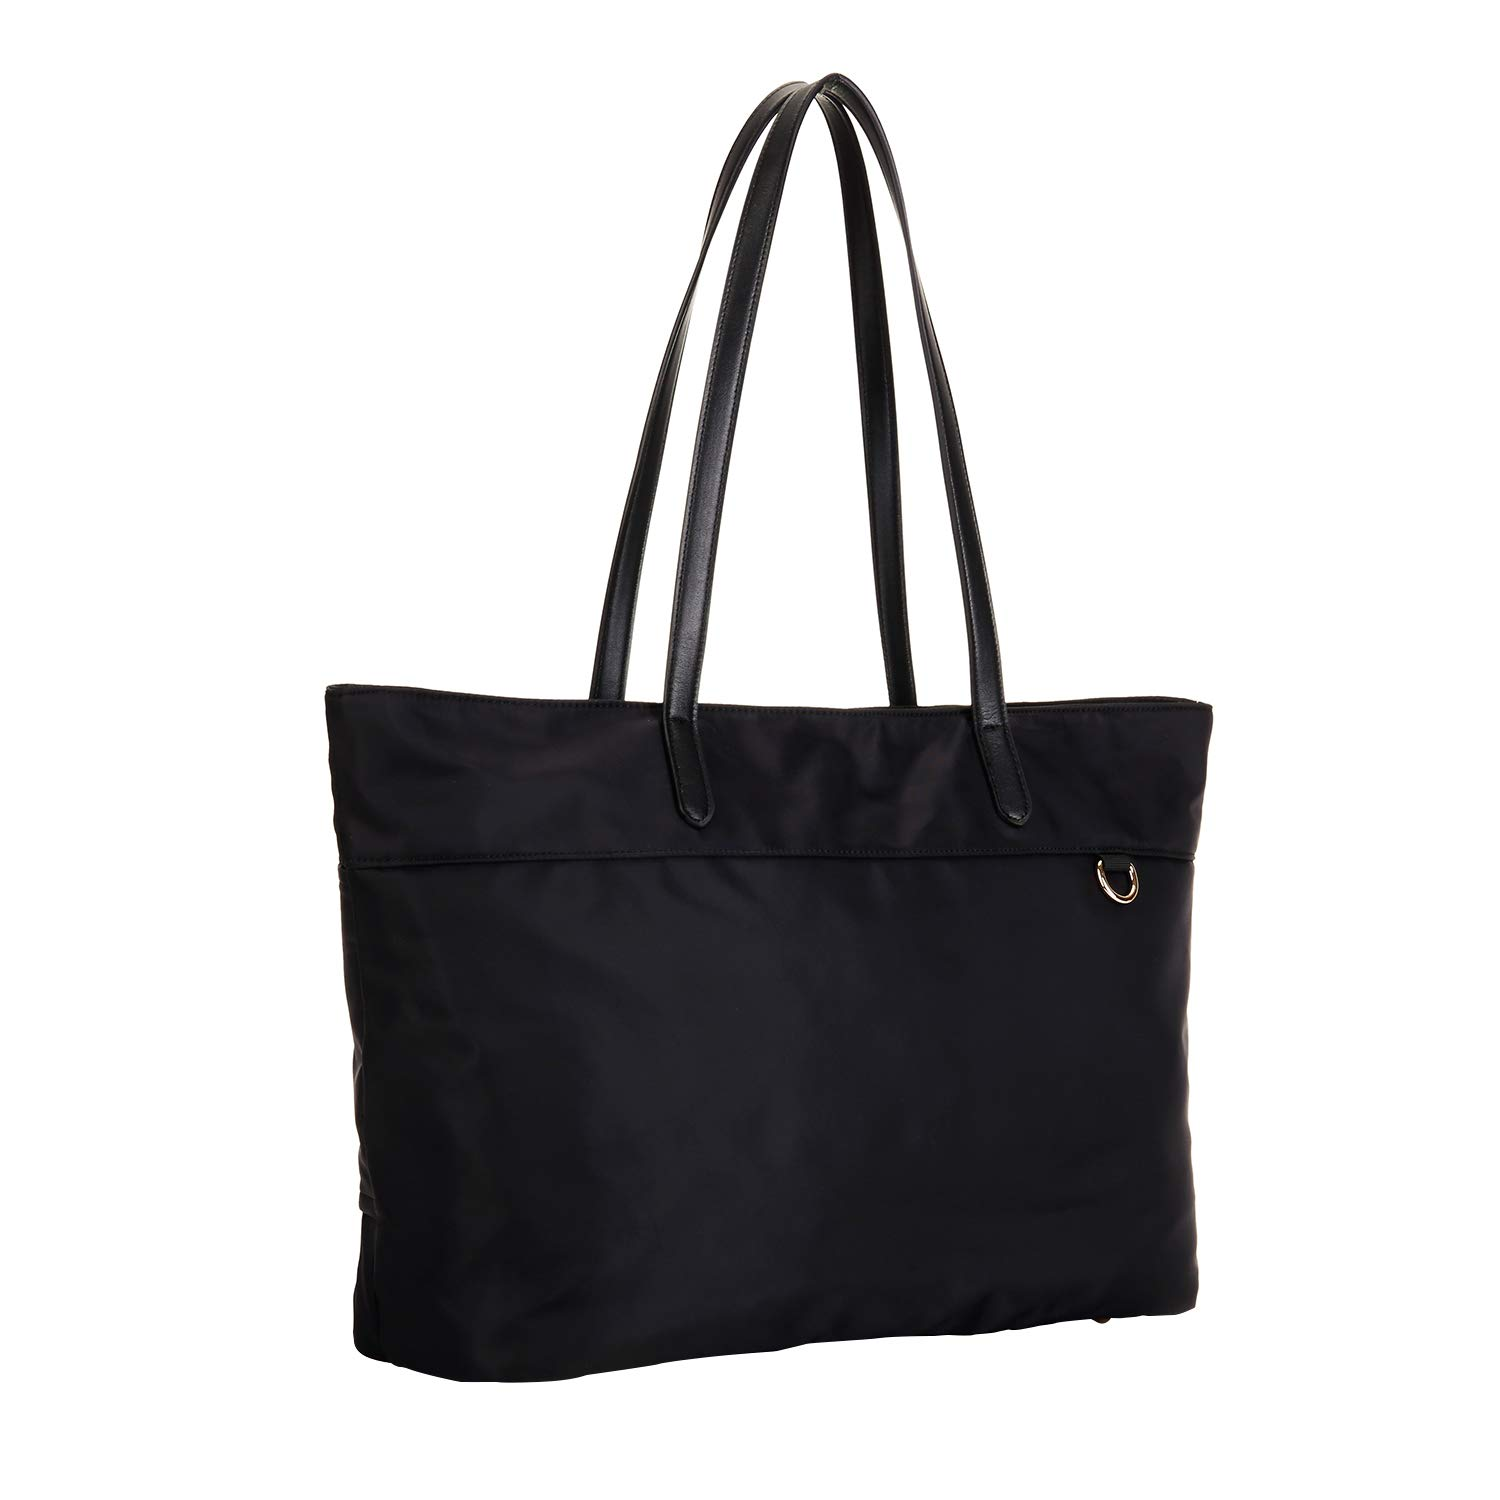 Nylon Shopping Tote Bag with Microfiber Leather Handles, Trolley Strap, Multiple Pockets and Key Clasp for Women Black